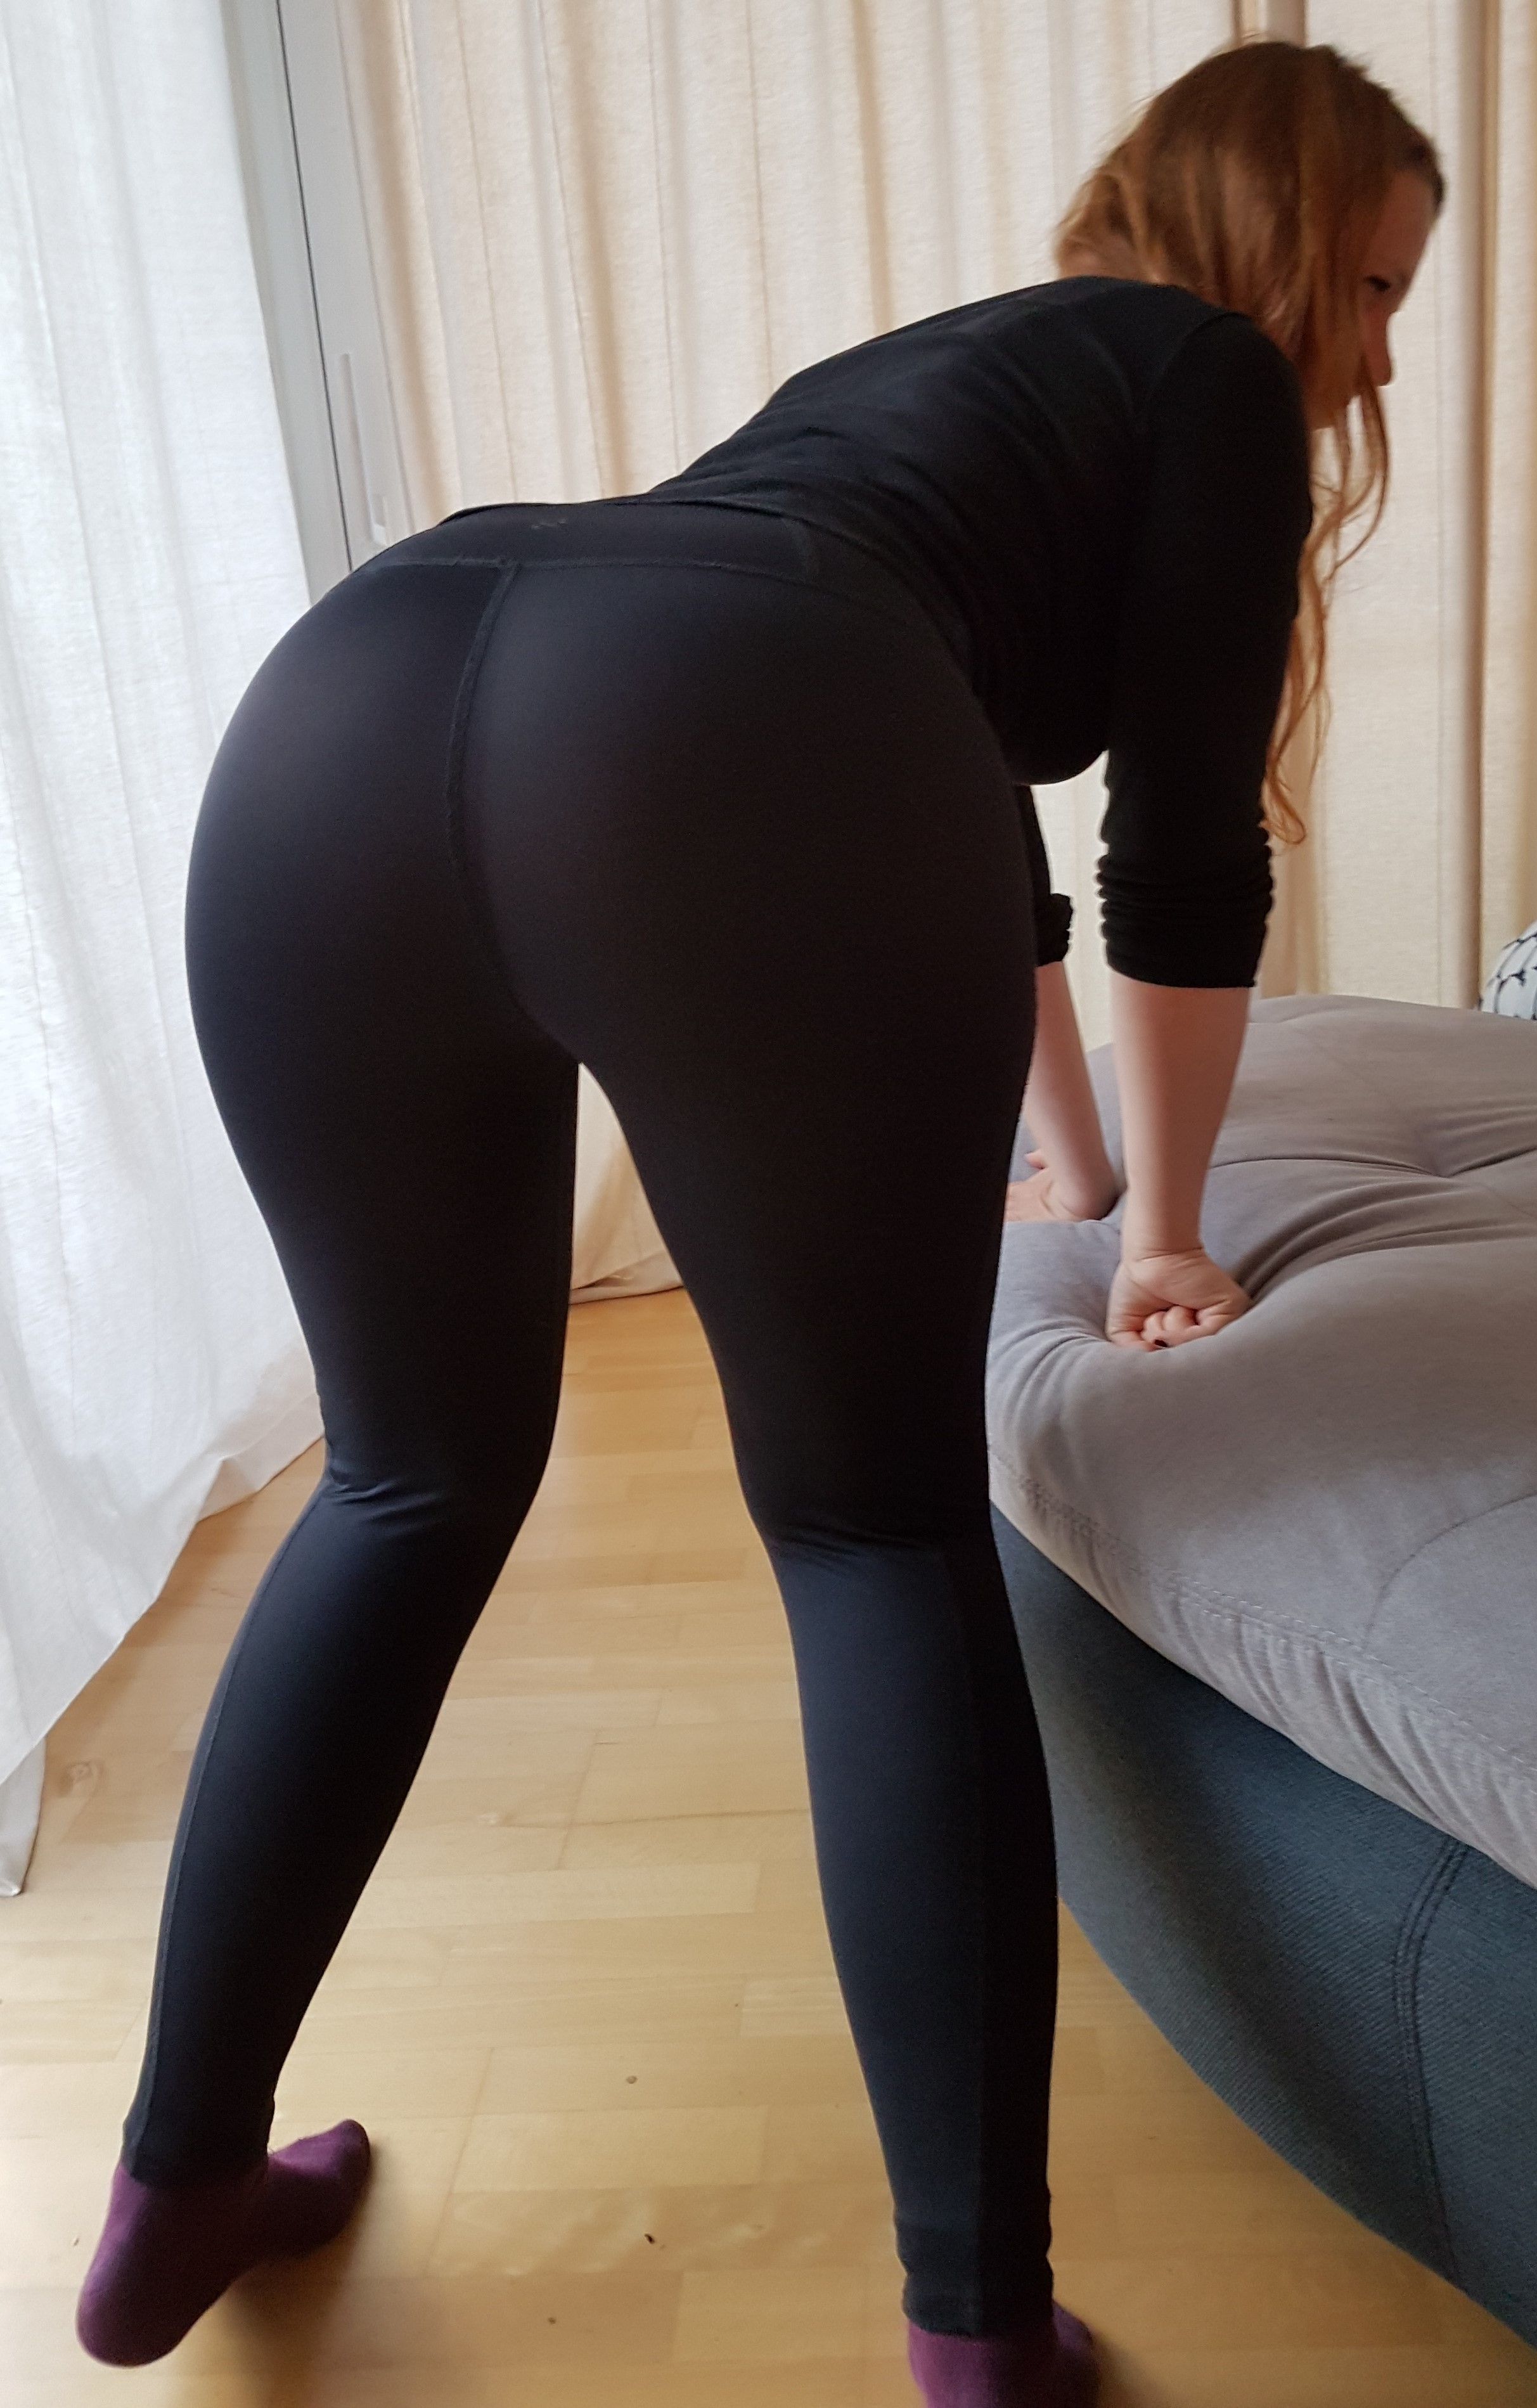 Cute girls in yoga pants theCHIVE